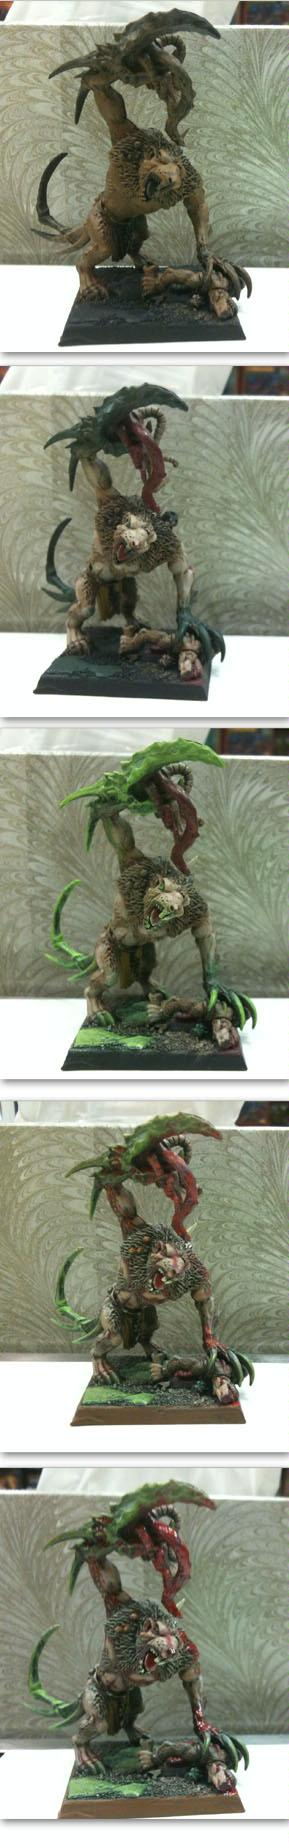 Rat Ogre stage-by-stage